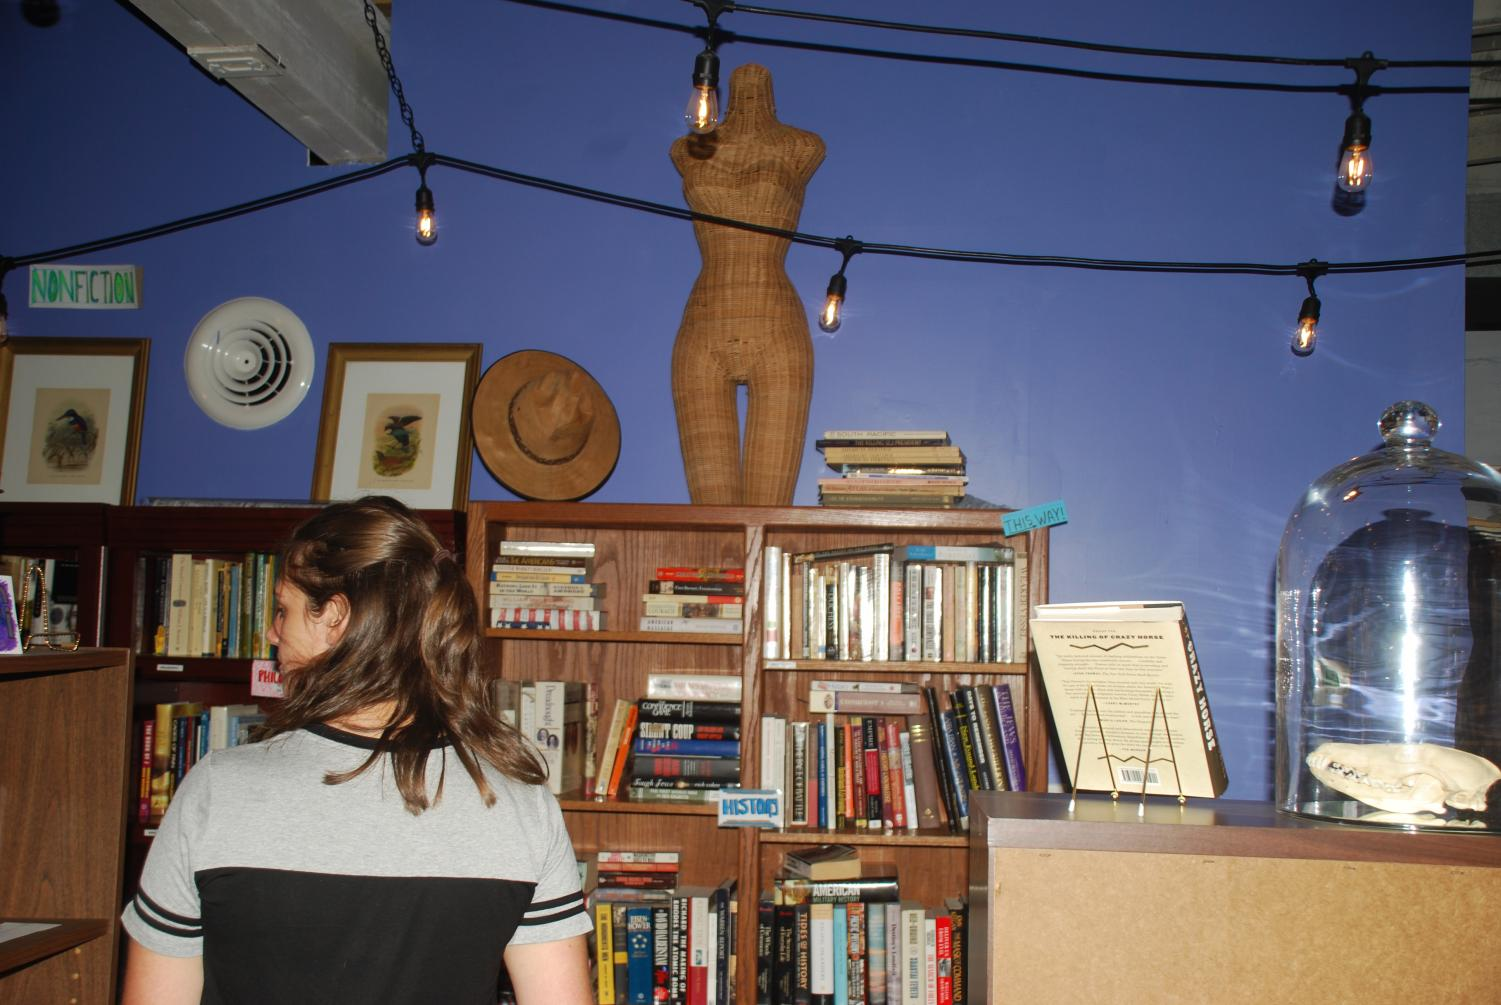 Amber Sturgill searched for her next potential read at Cicada Books and Coffee which opened in July 2018.